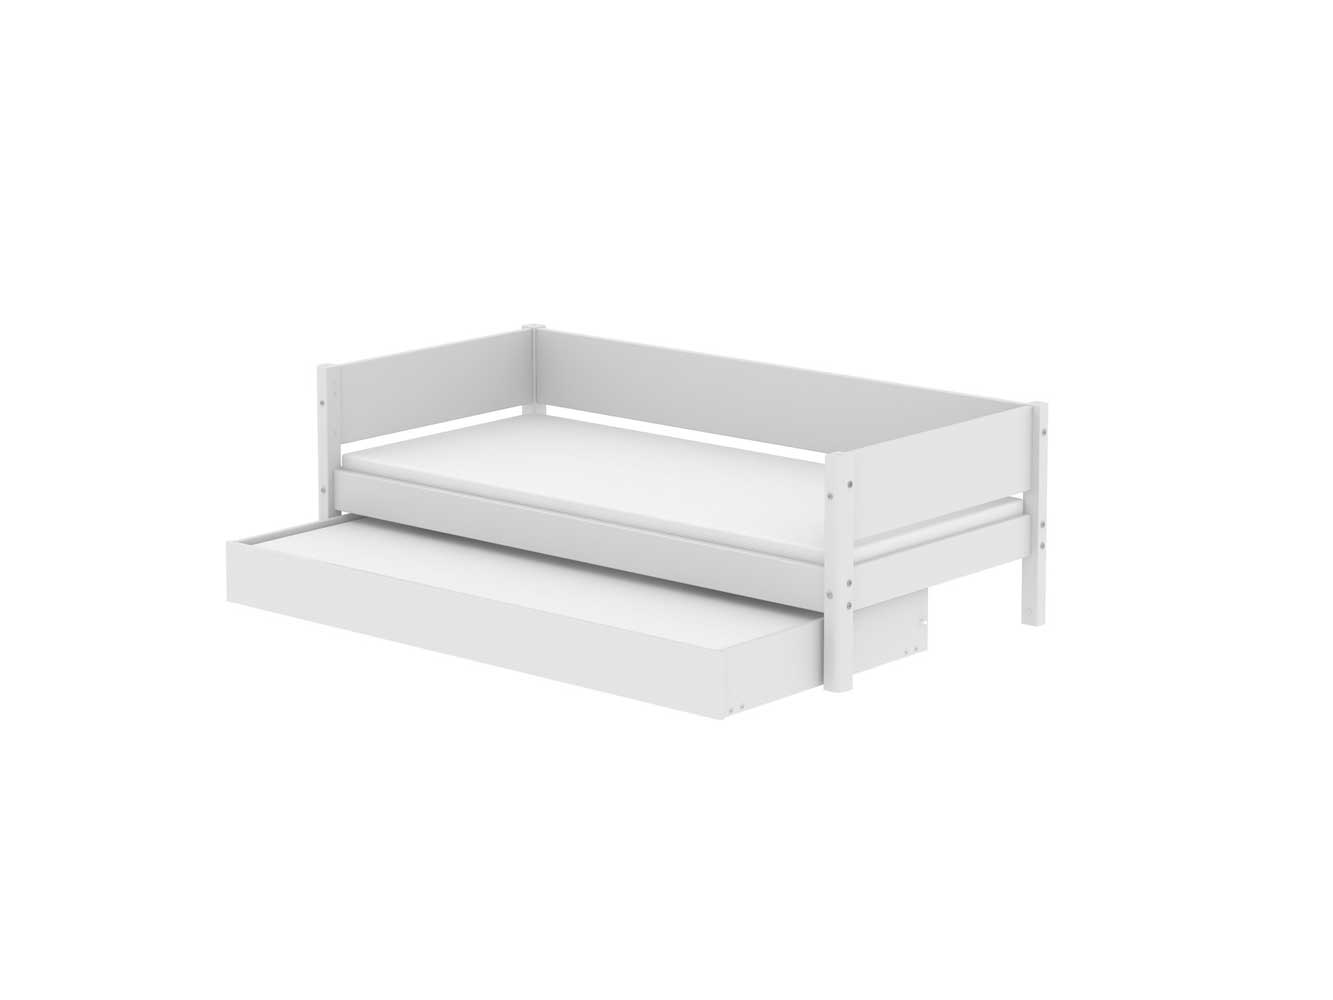 flexa white mdf einzelbett mit ausziehbett 190cm wei einzelbett flexa white system flexa. Black Bedroom Furniture Sets. Home Design Ideas